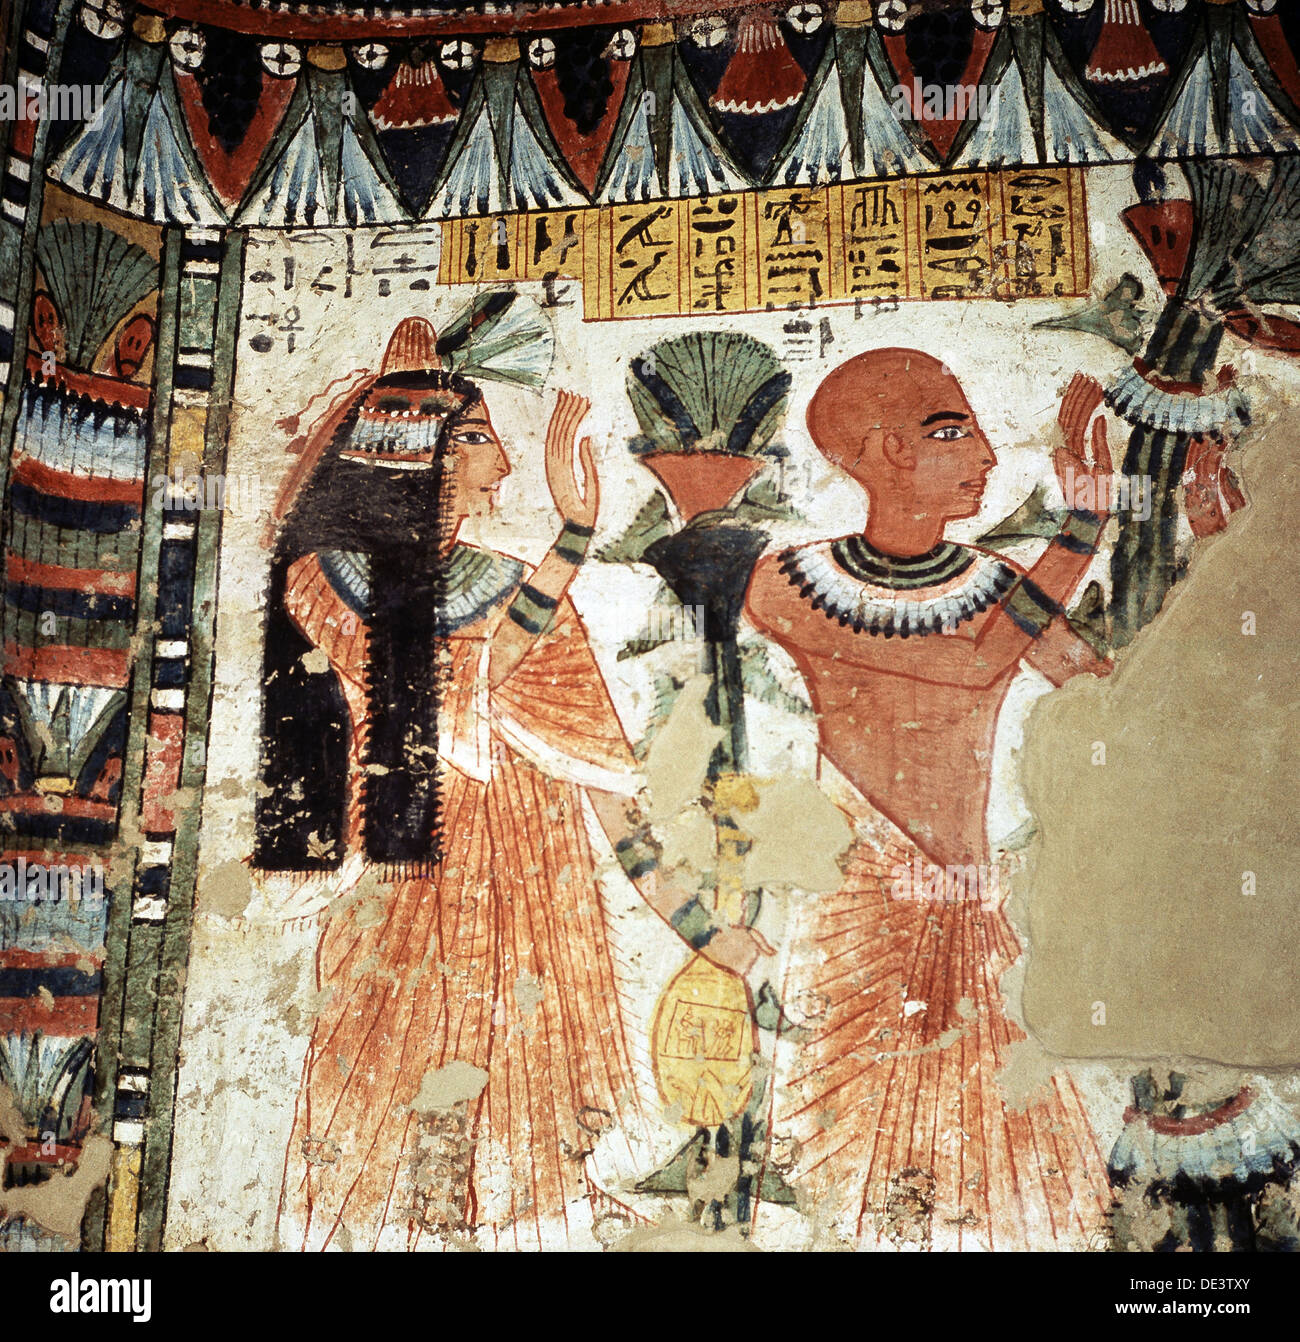 Wall painting from the tomb 278 of Amenemhab. - Stock Image